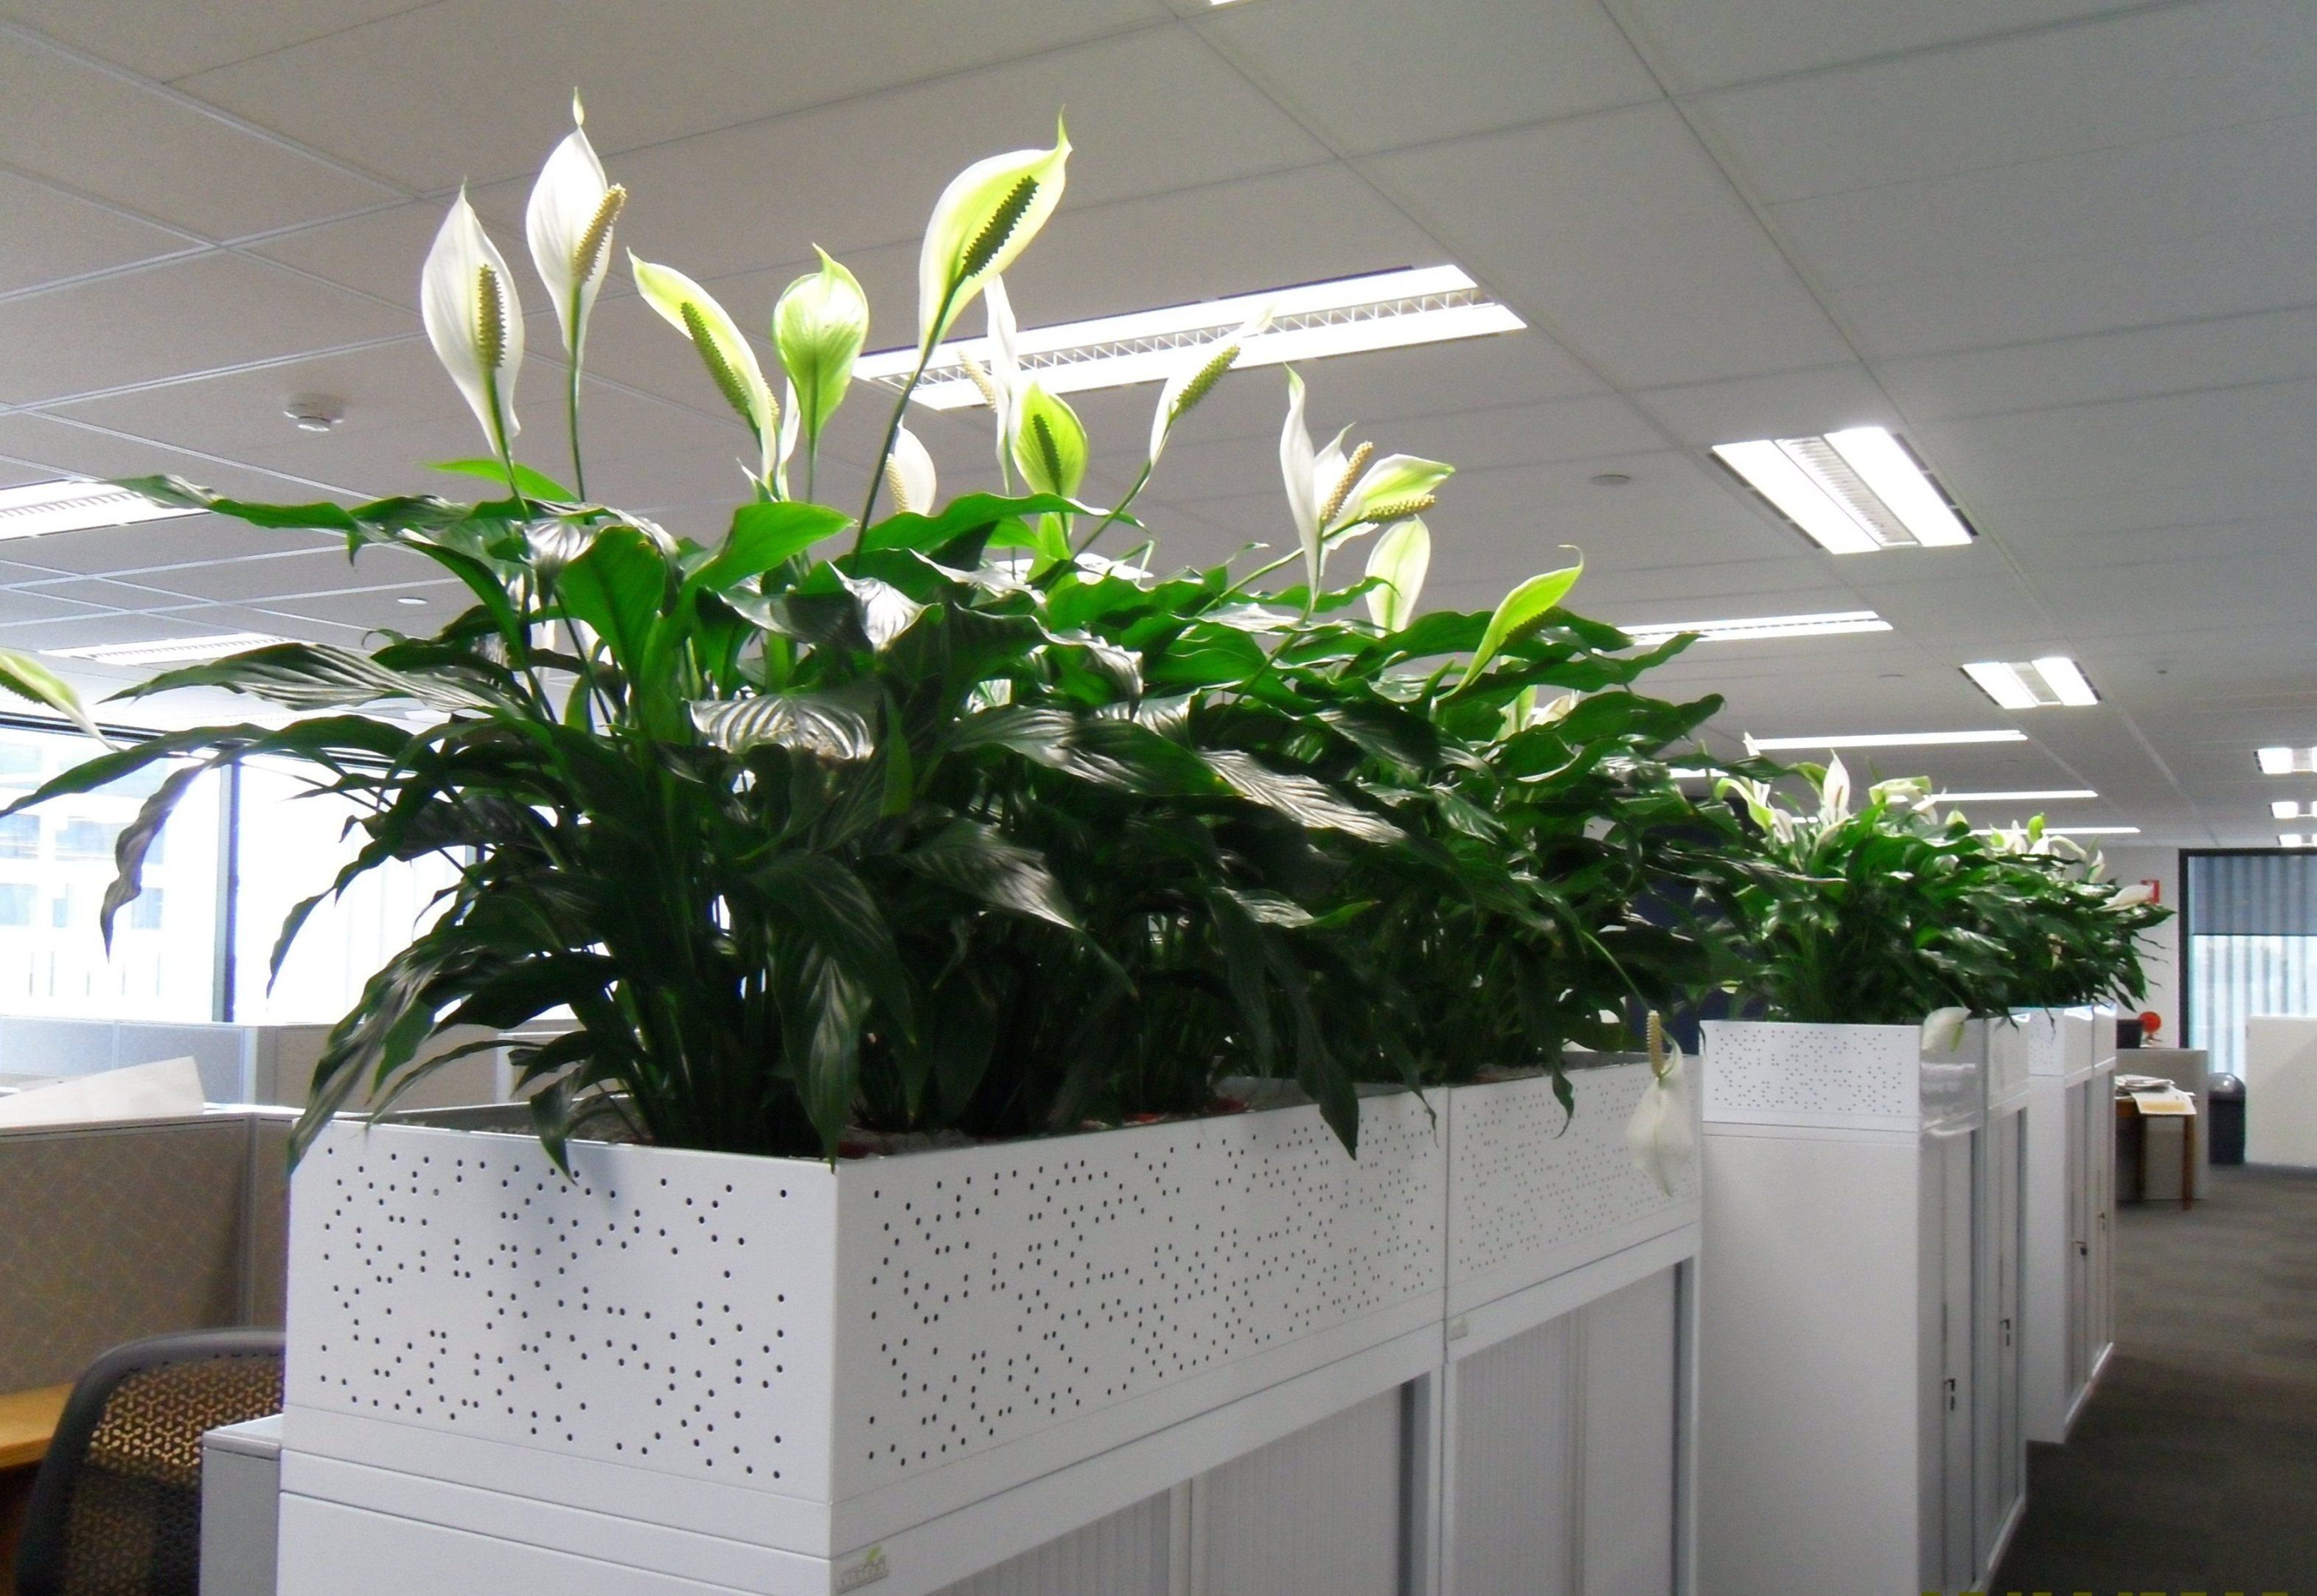 Keeping Plants In The Office Can Help Clean The Air And